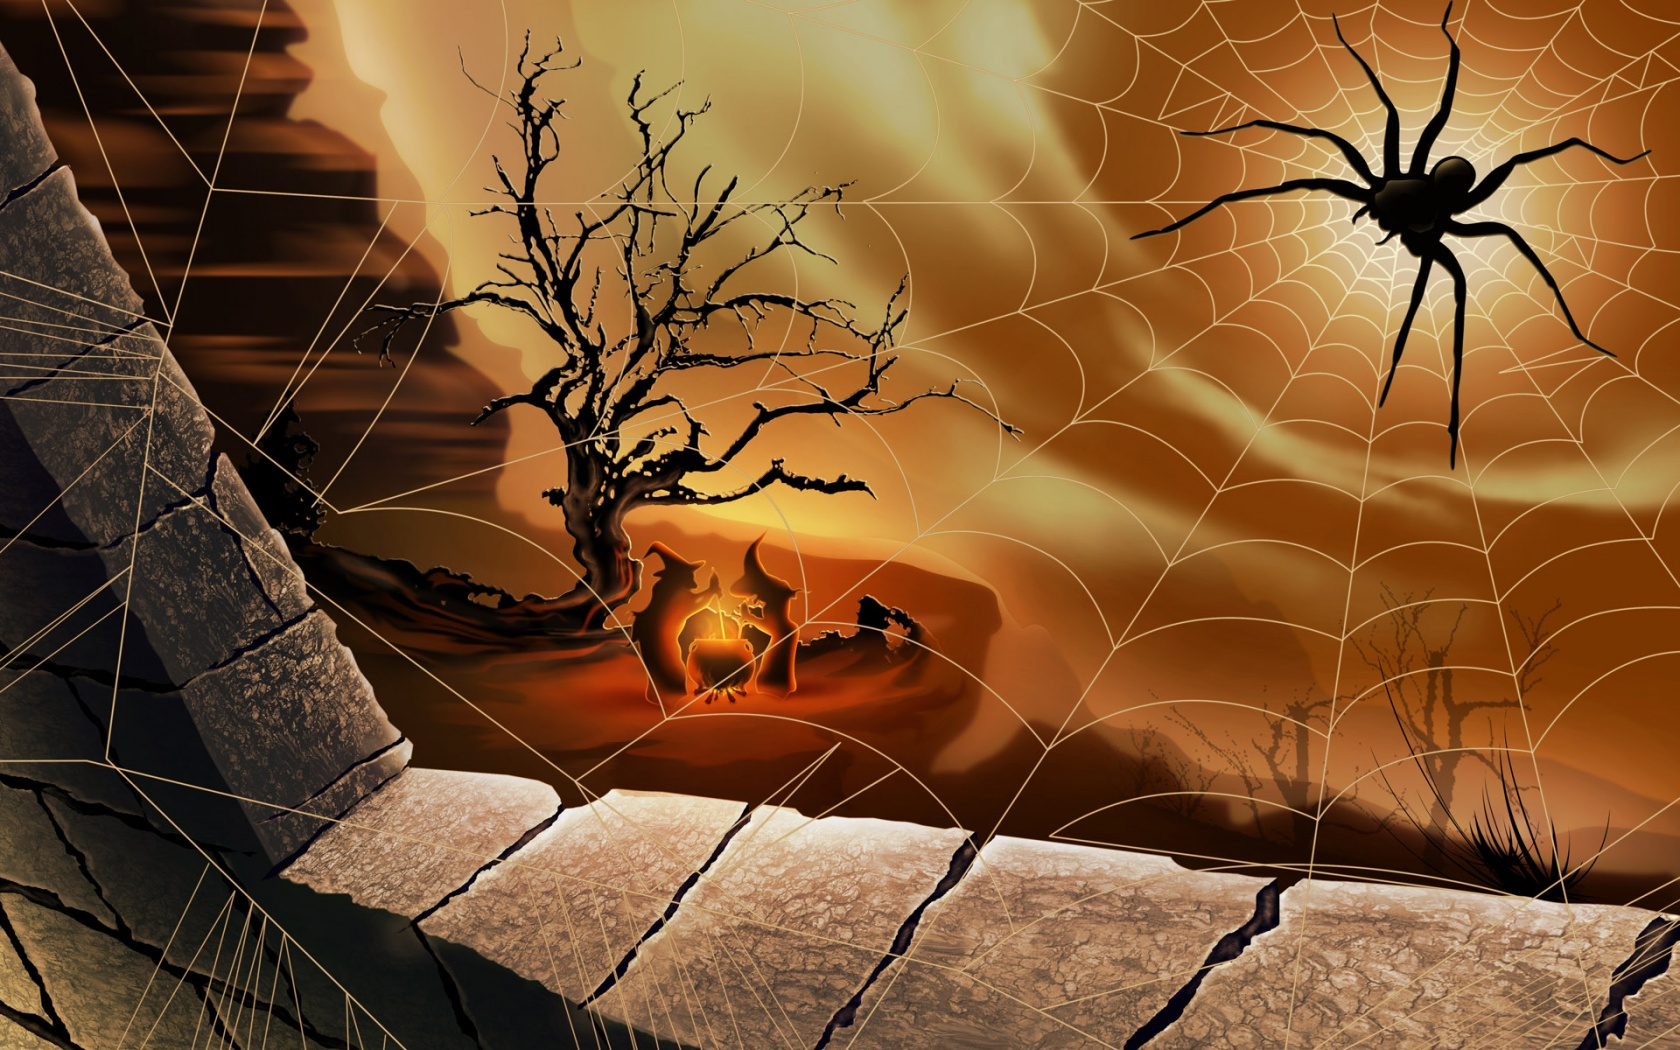 Free screensavers and wallpapers - Scary halloween screensavers animated ...